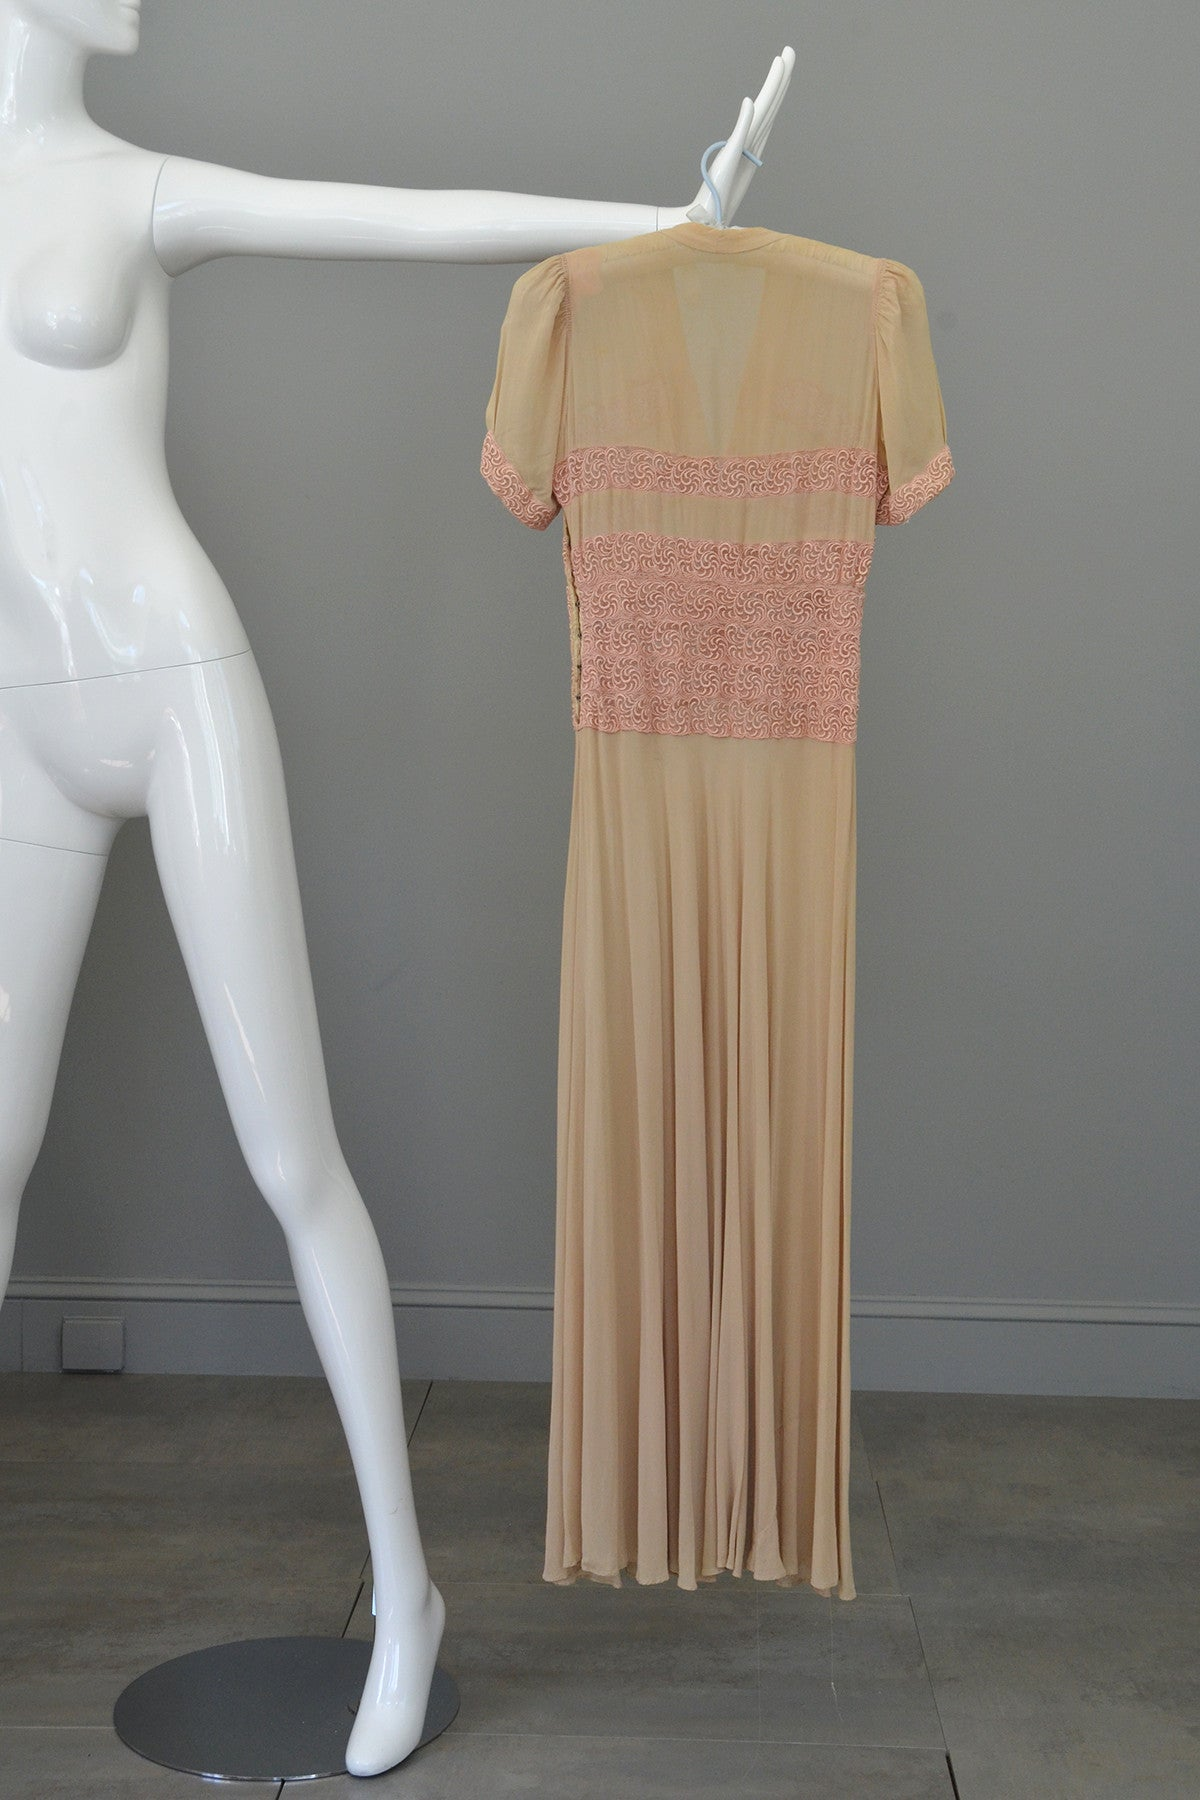 1930s Pink Embroidered Lace Ecru Rayon Crepe Deco Gown